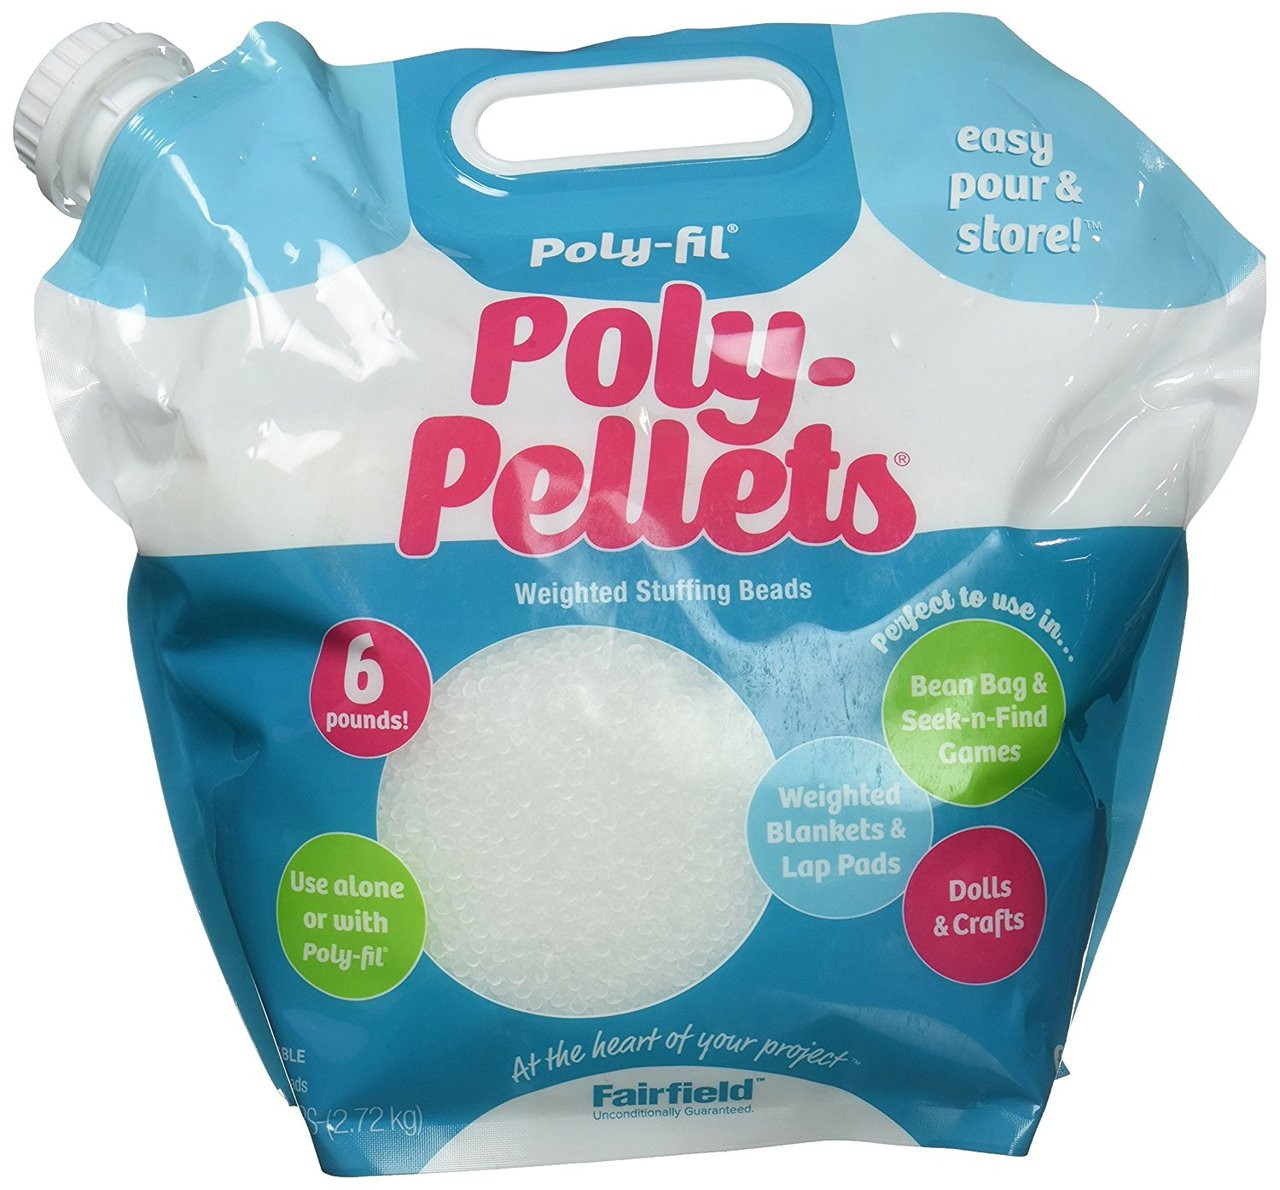 6 Pound Pour and Store Bag Fairfield Fil Poly Pellets Weighted Stuffing Beads White